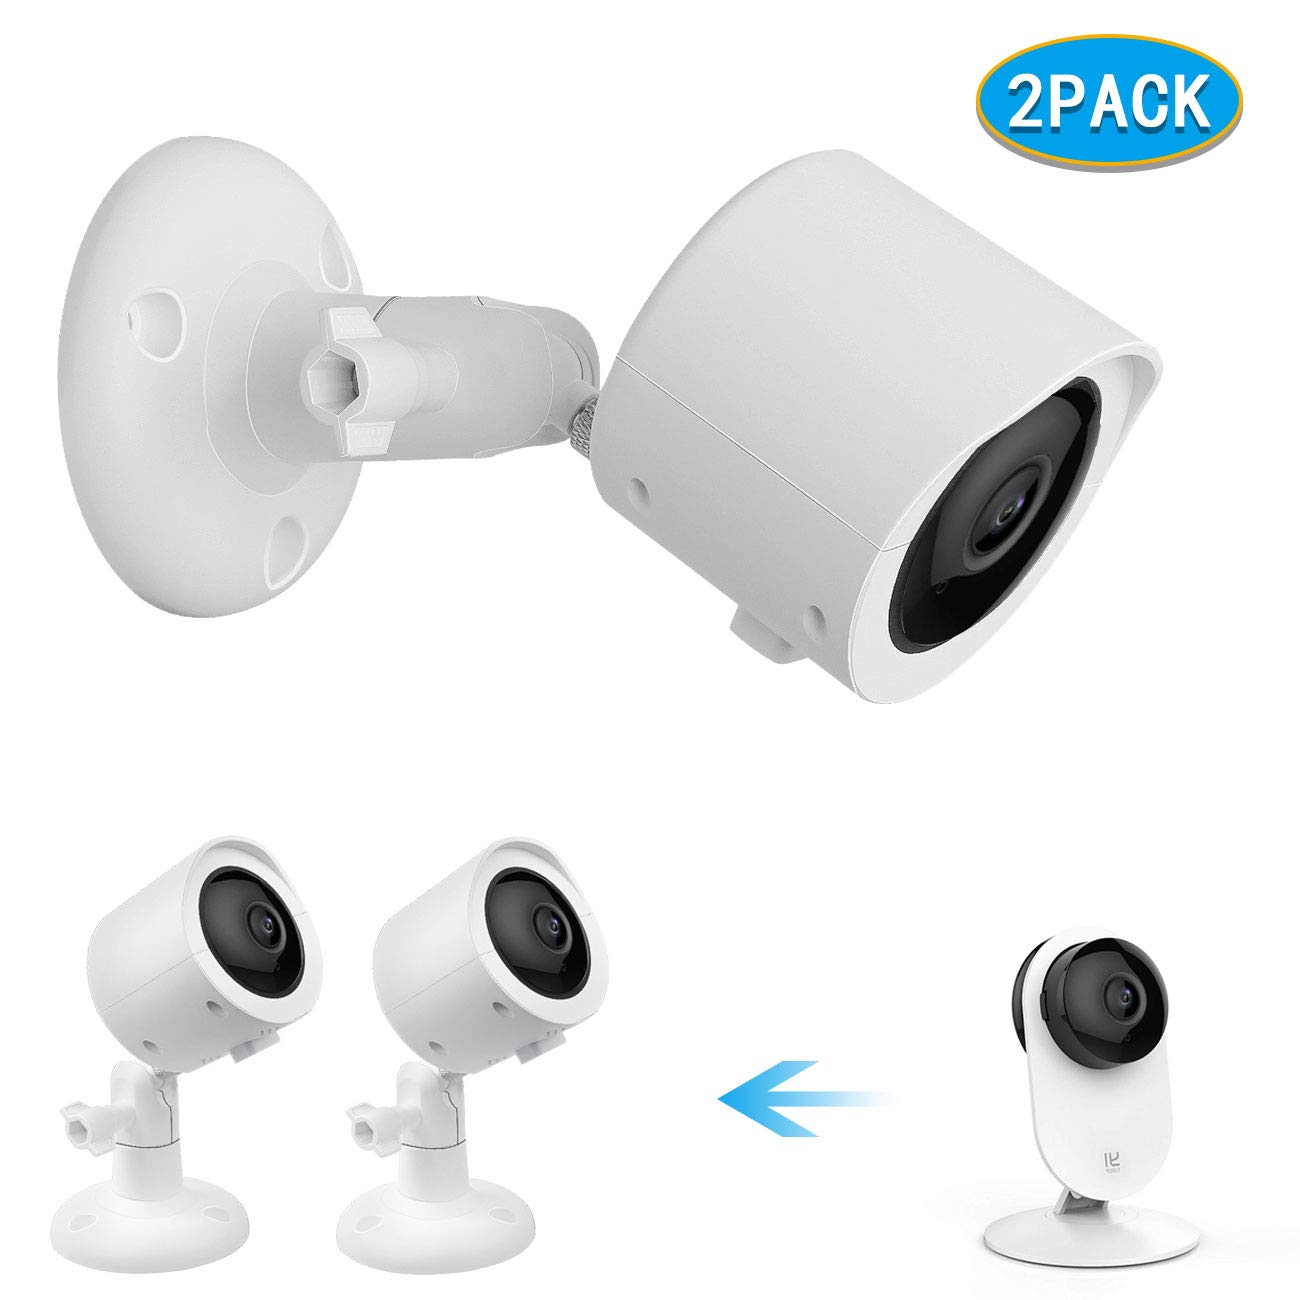 Wall Mount + Weatherproof Case for YI Home Camera - by Koroao - Indoor/Outdoor Security Bracket More Stable and Flexible (2-Pack, White)